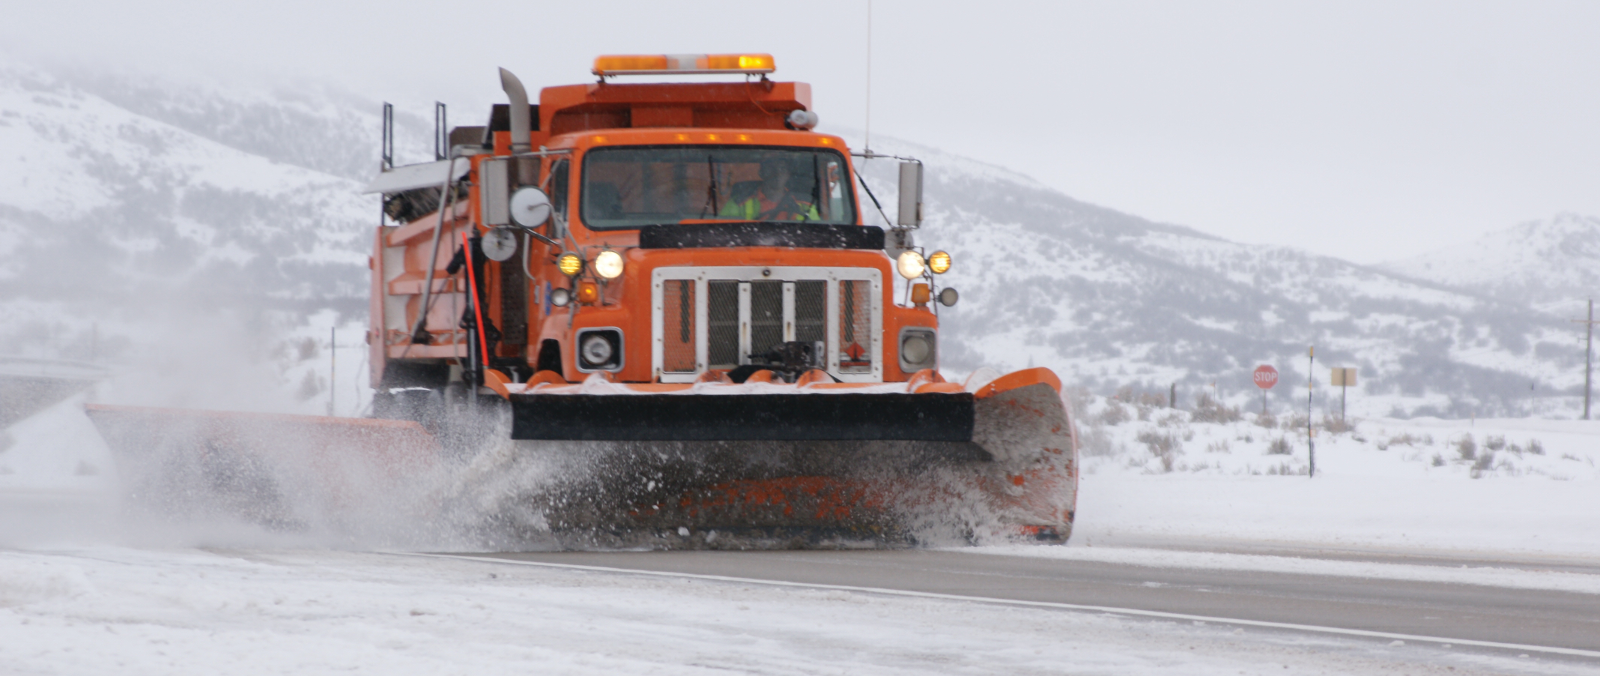 amp liquid deicing snowplow